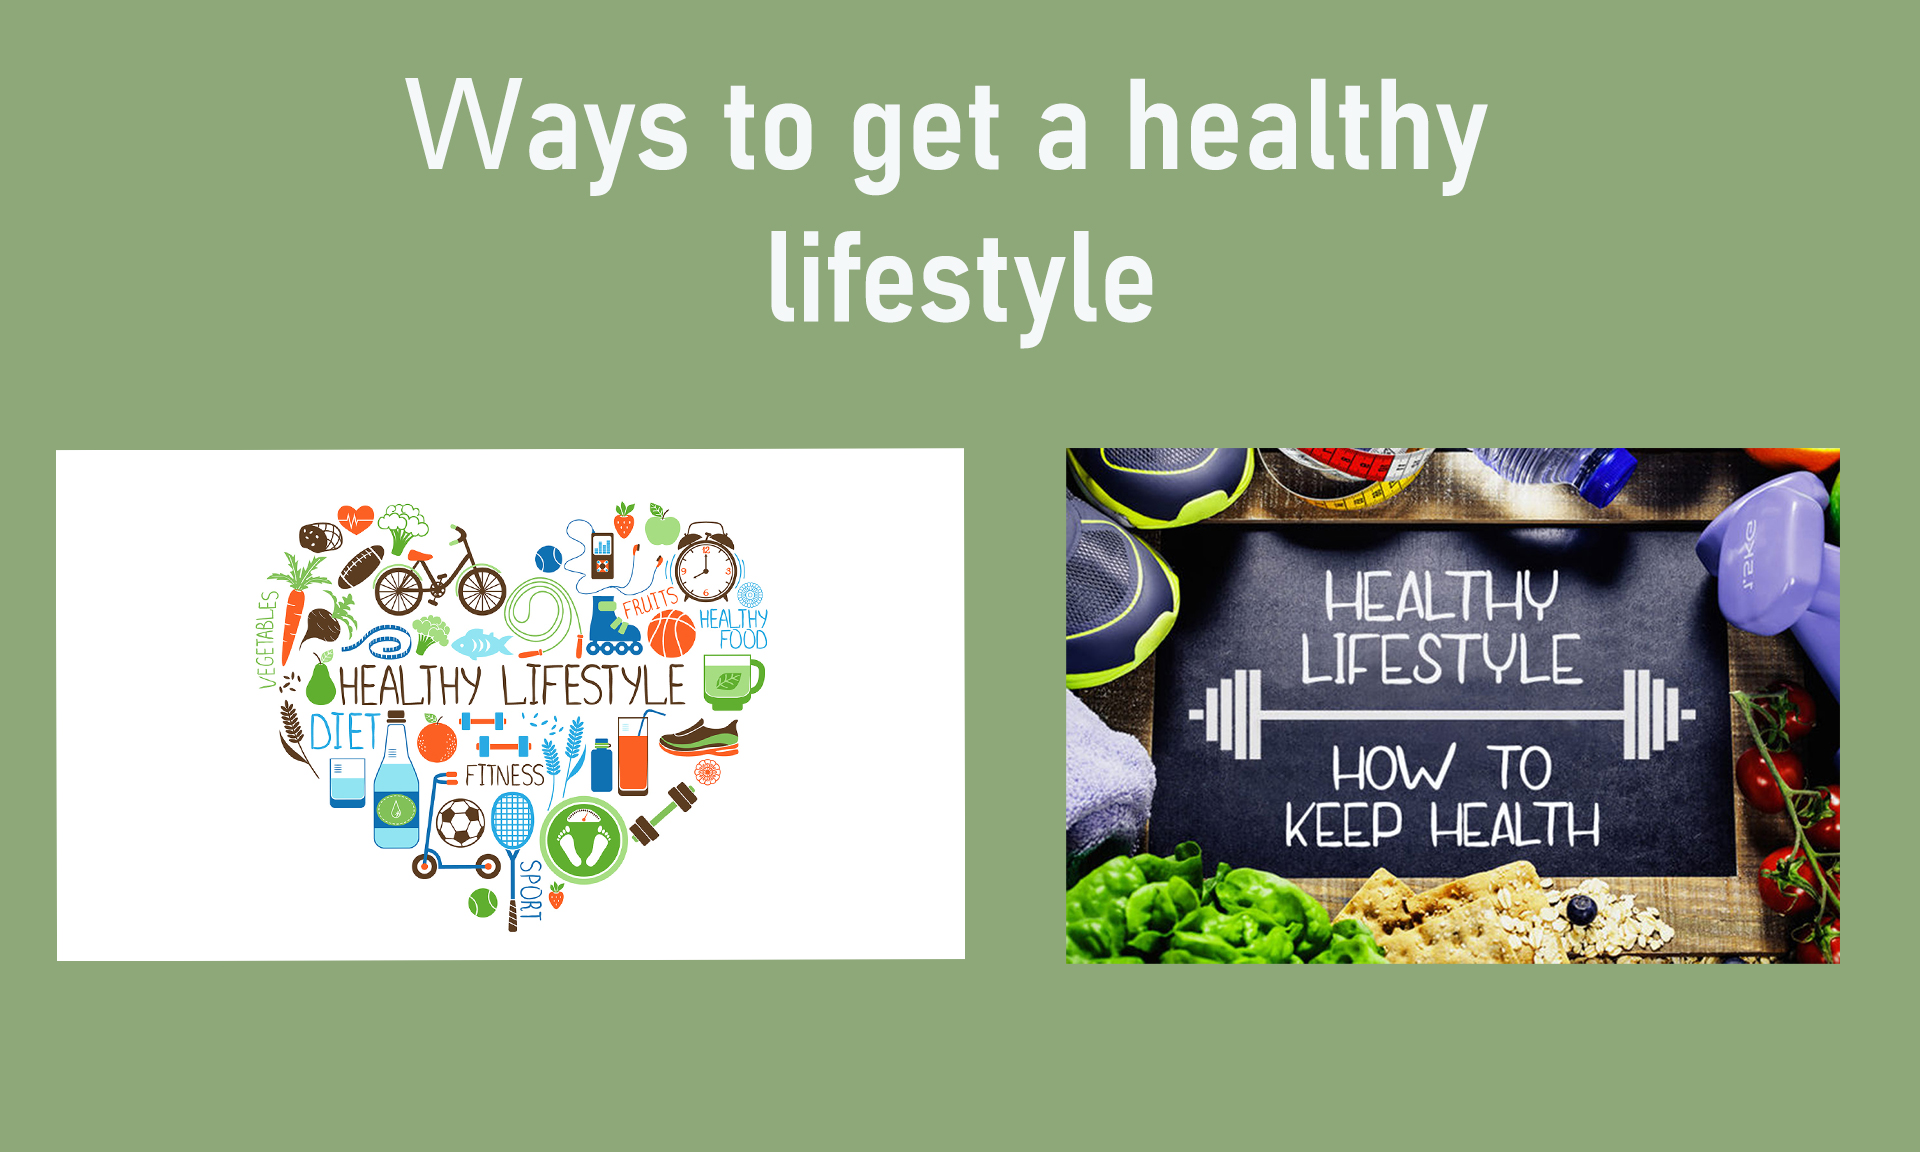 5-ways-to-get-a-healthy-lifestyle